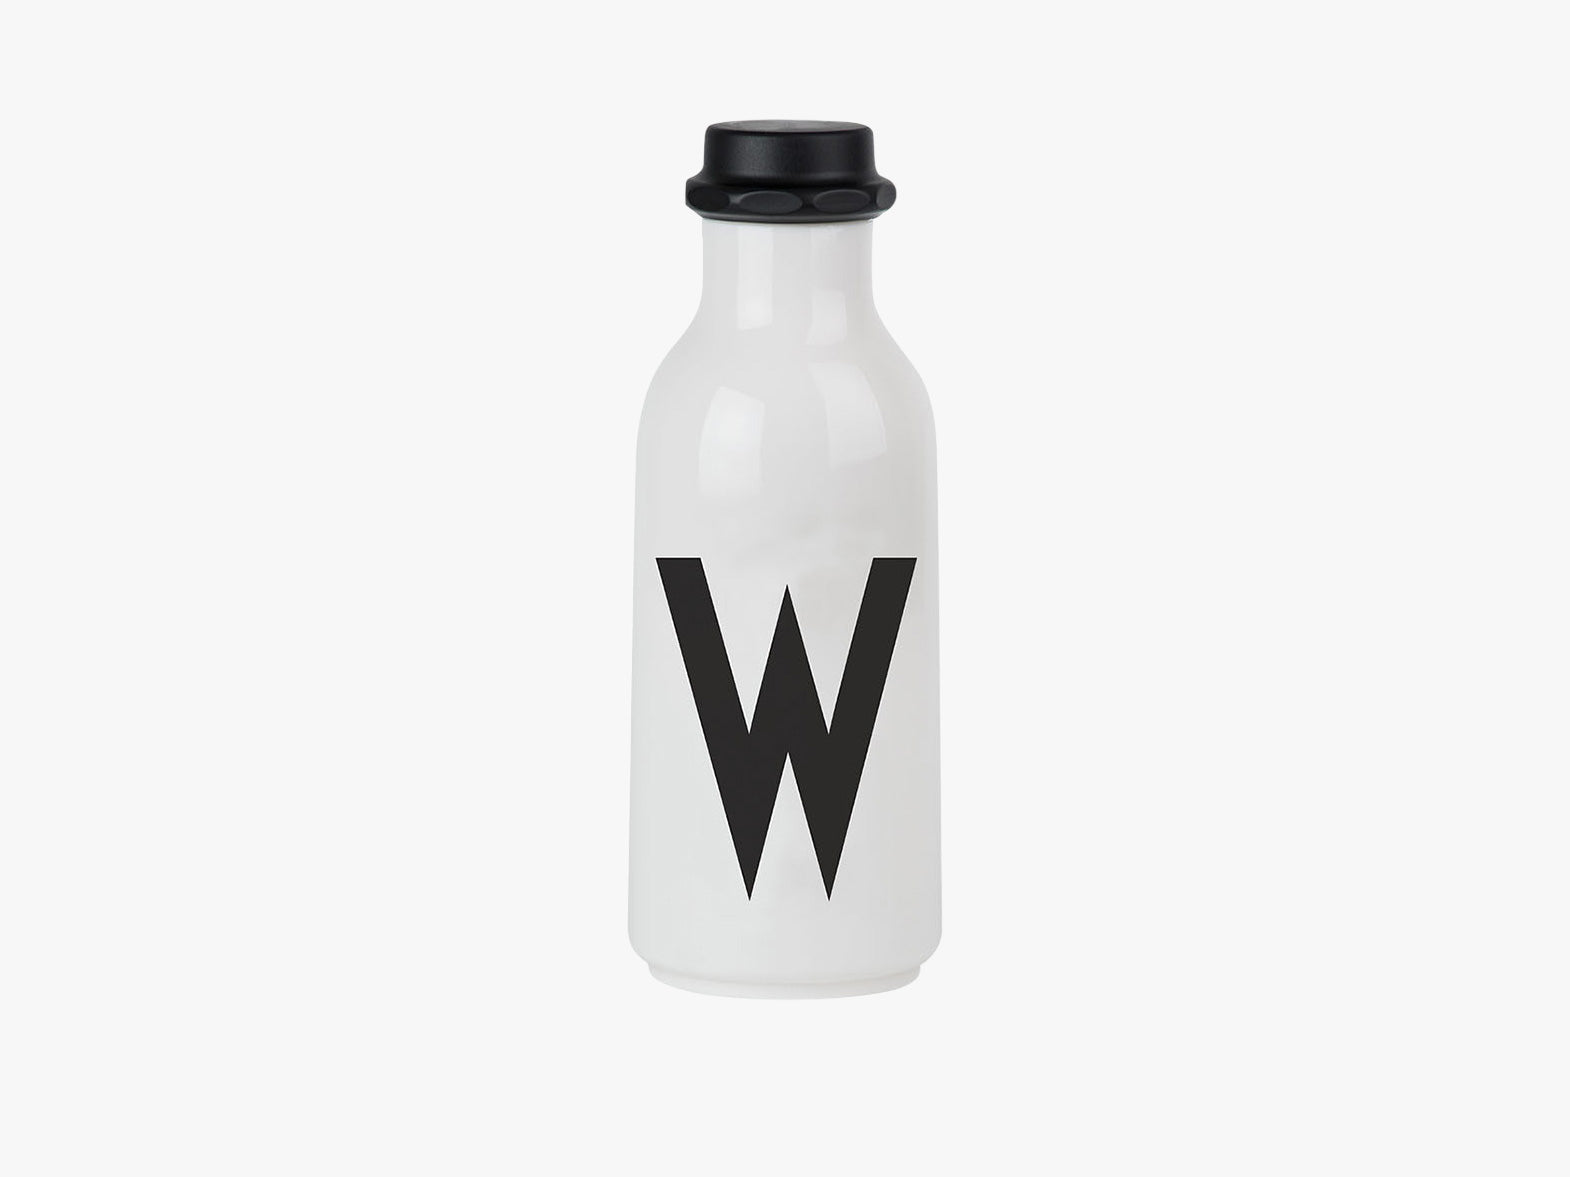 W - Drinking Bottle fra Design Letters